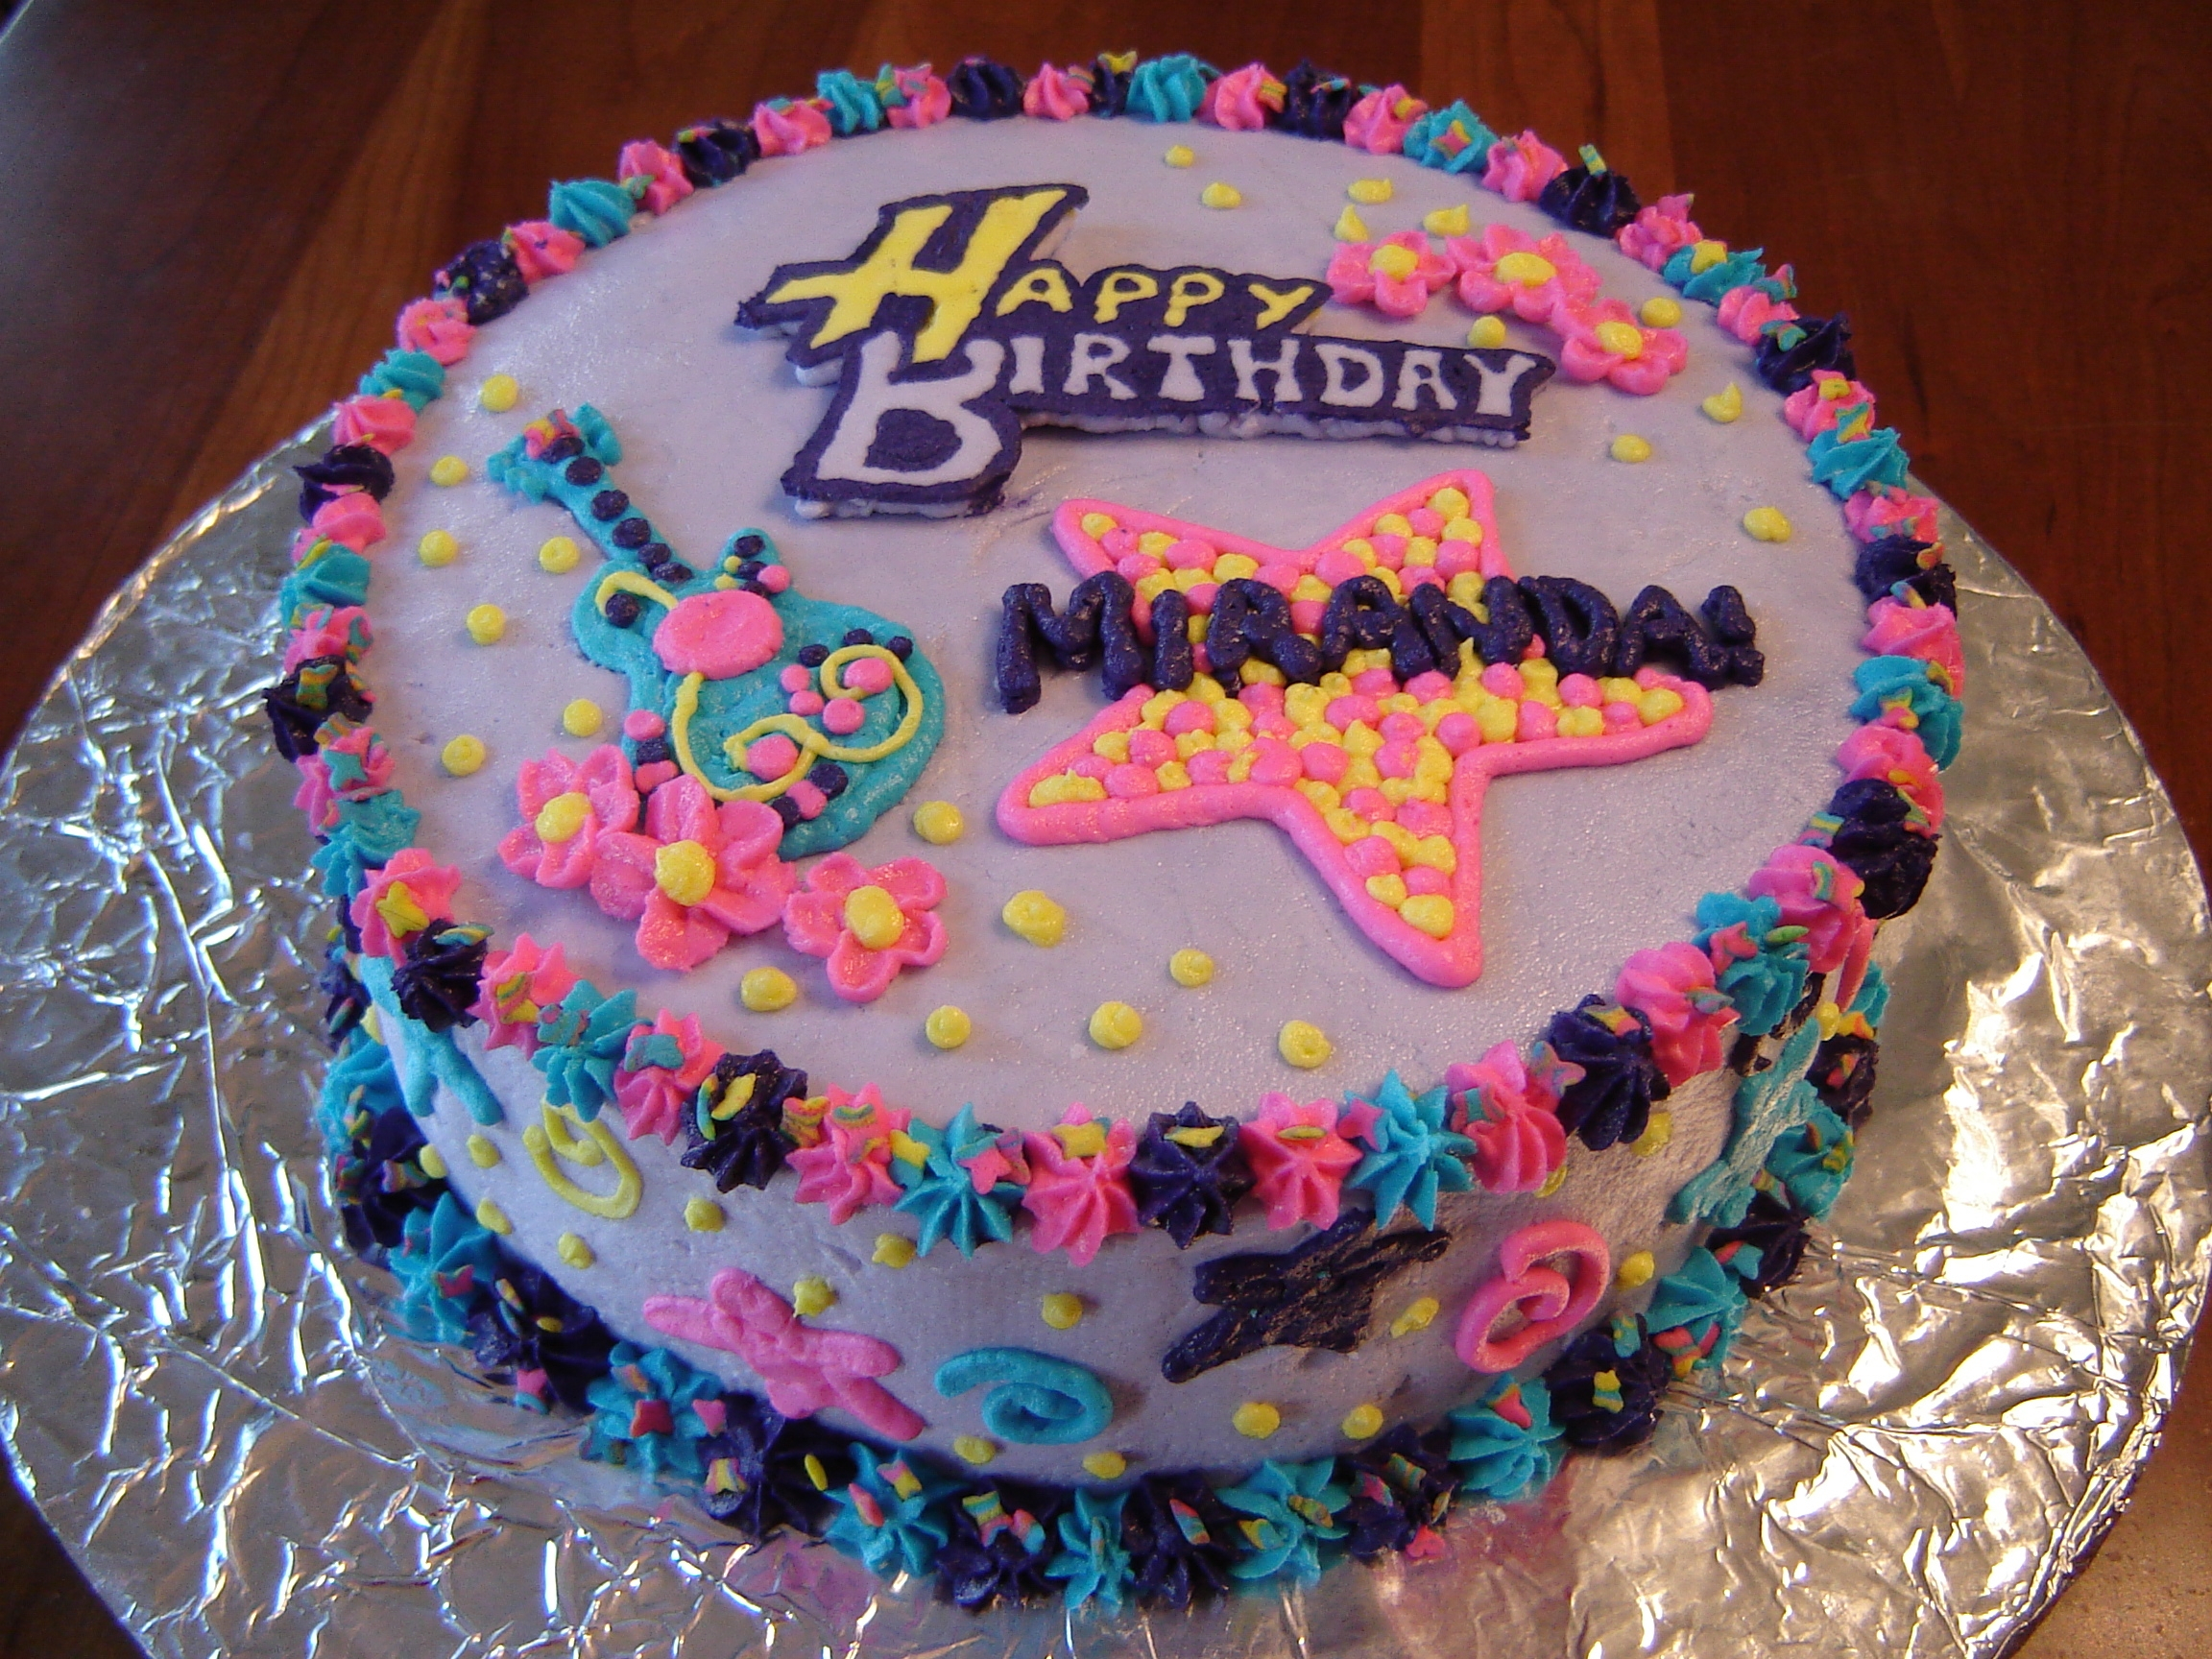 14 Year Old Birthday Cake Contemporary Ideas 8 Year Old Birthday Cake Cosy Hannah Montana With